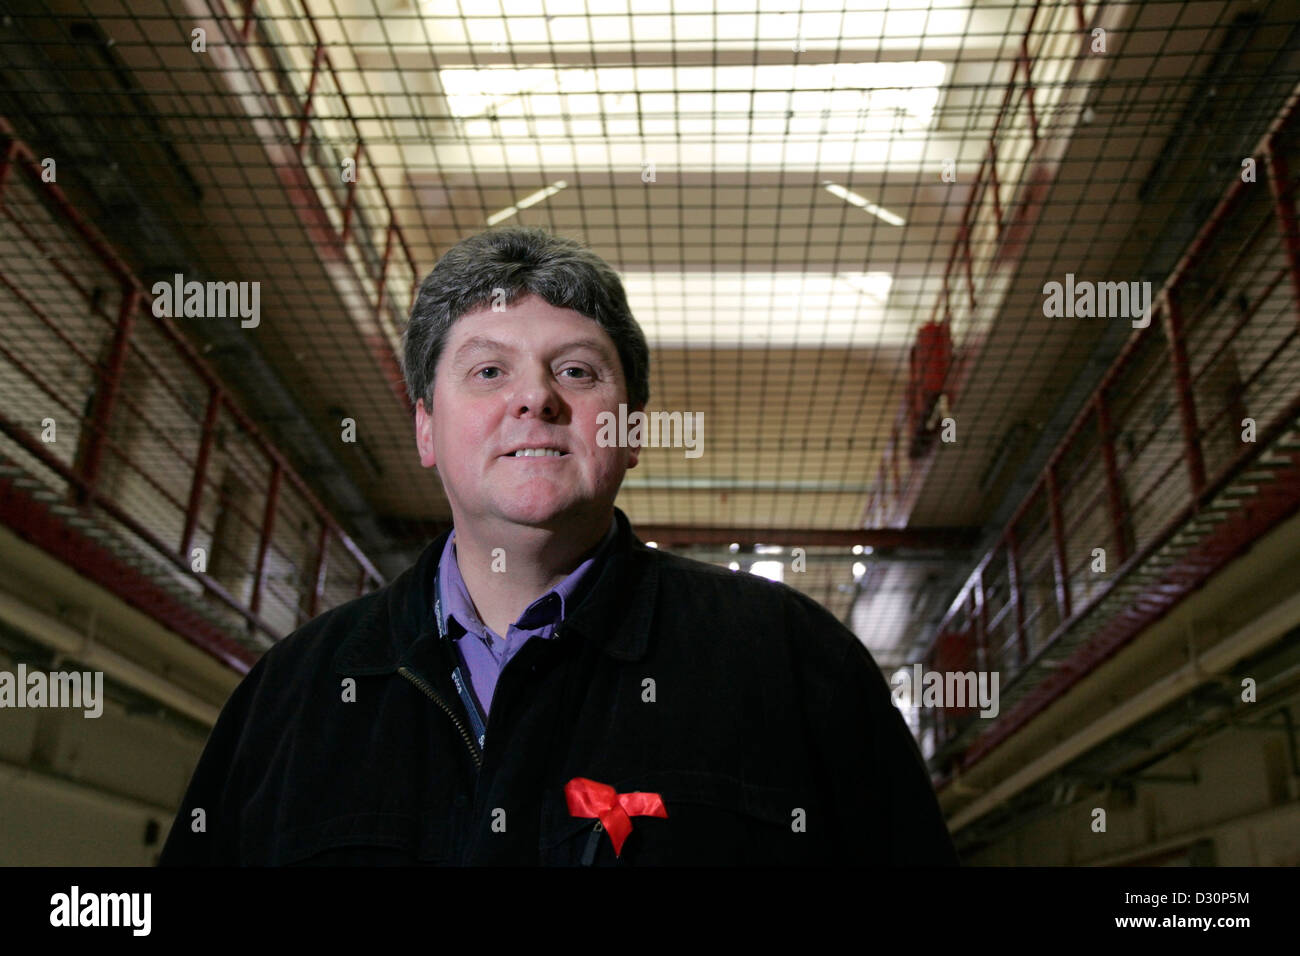 Rev. Donald Scott Chaplain at Polmont Young Offenders Institution 18/01/06 - Stock Image